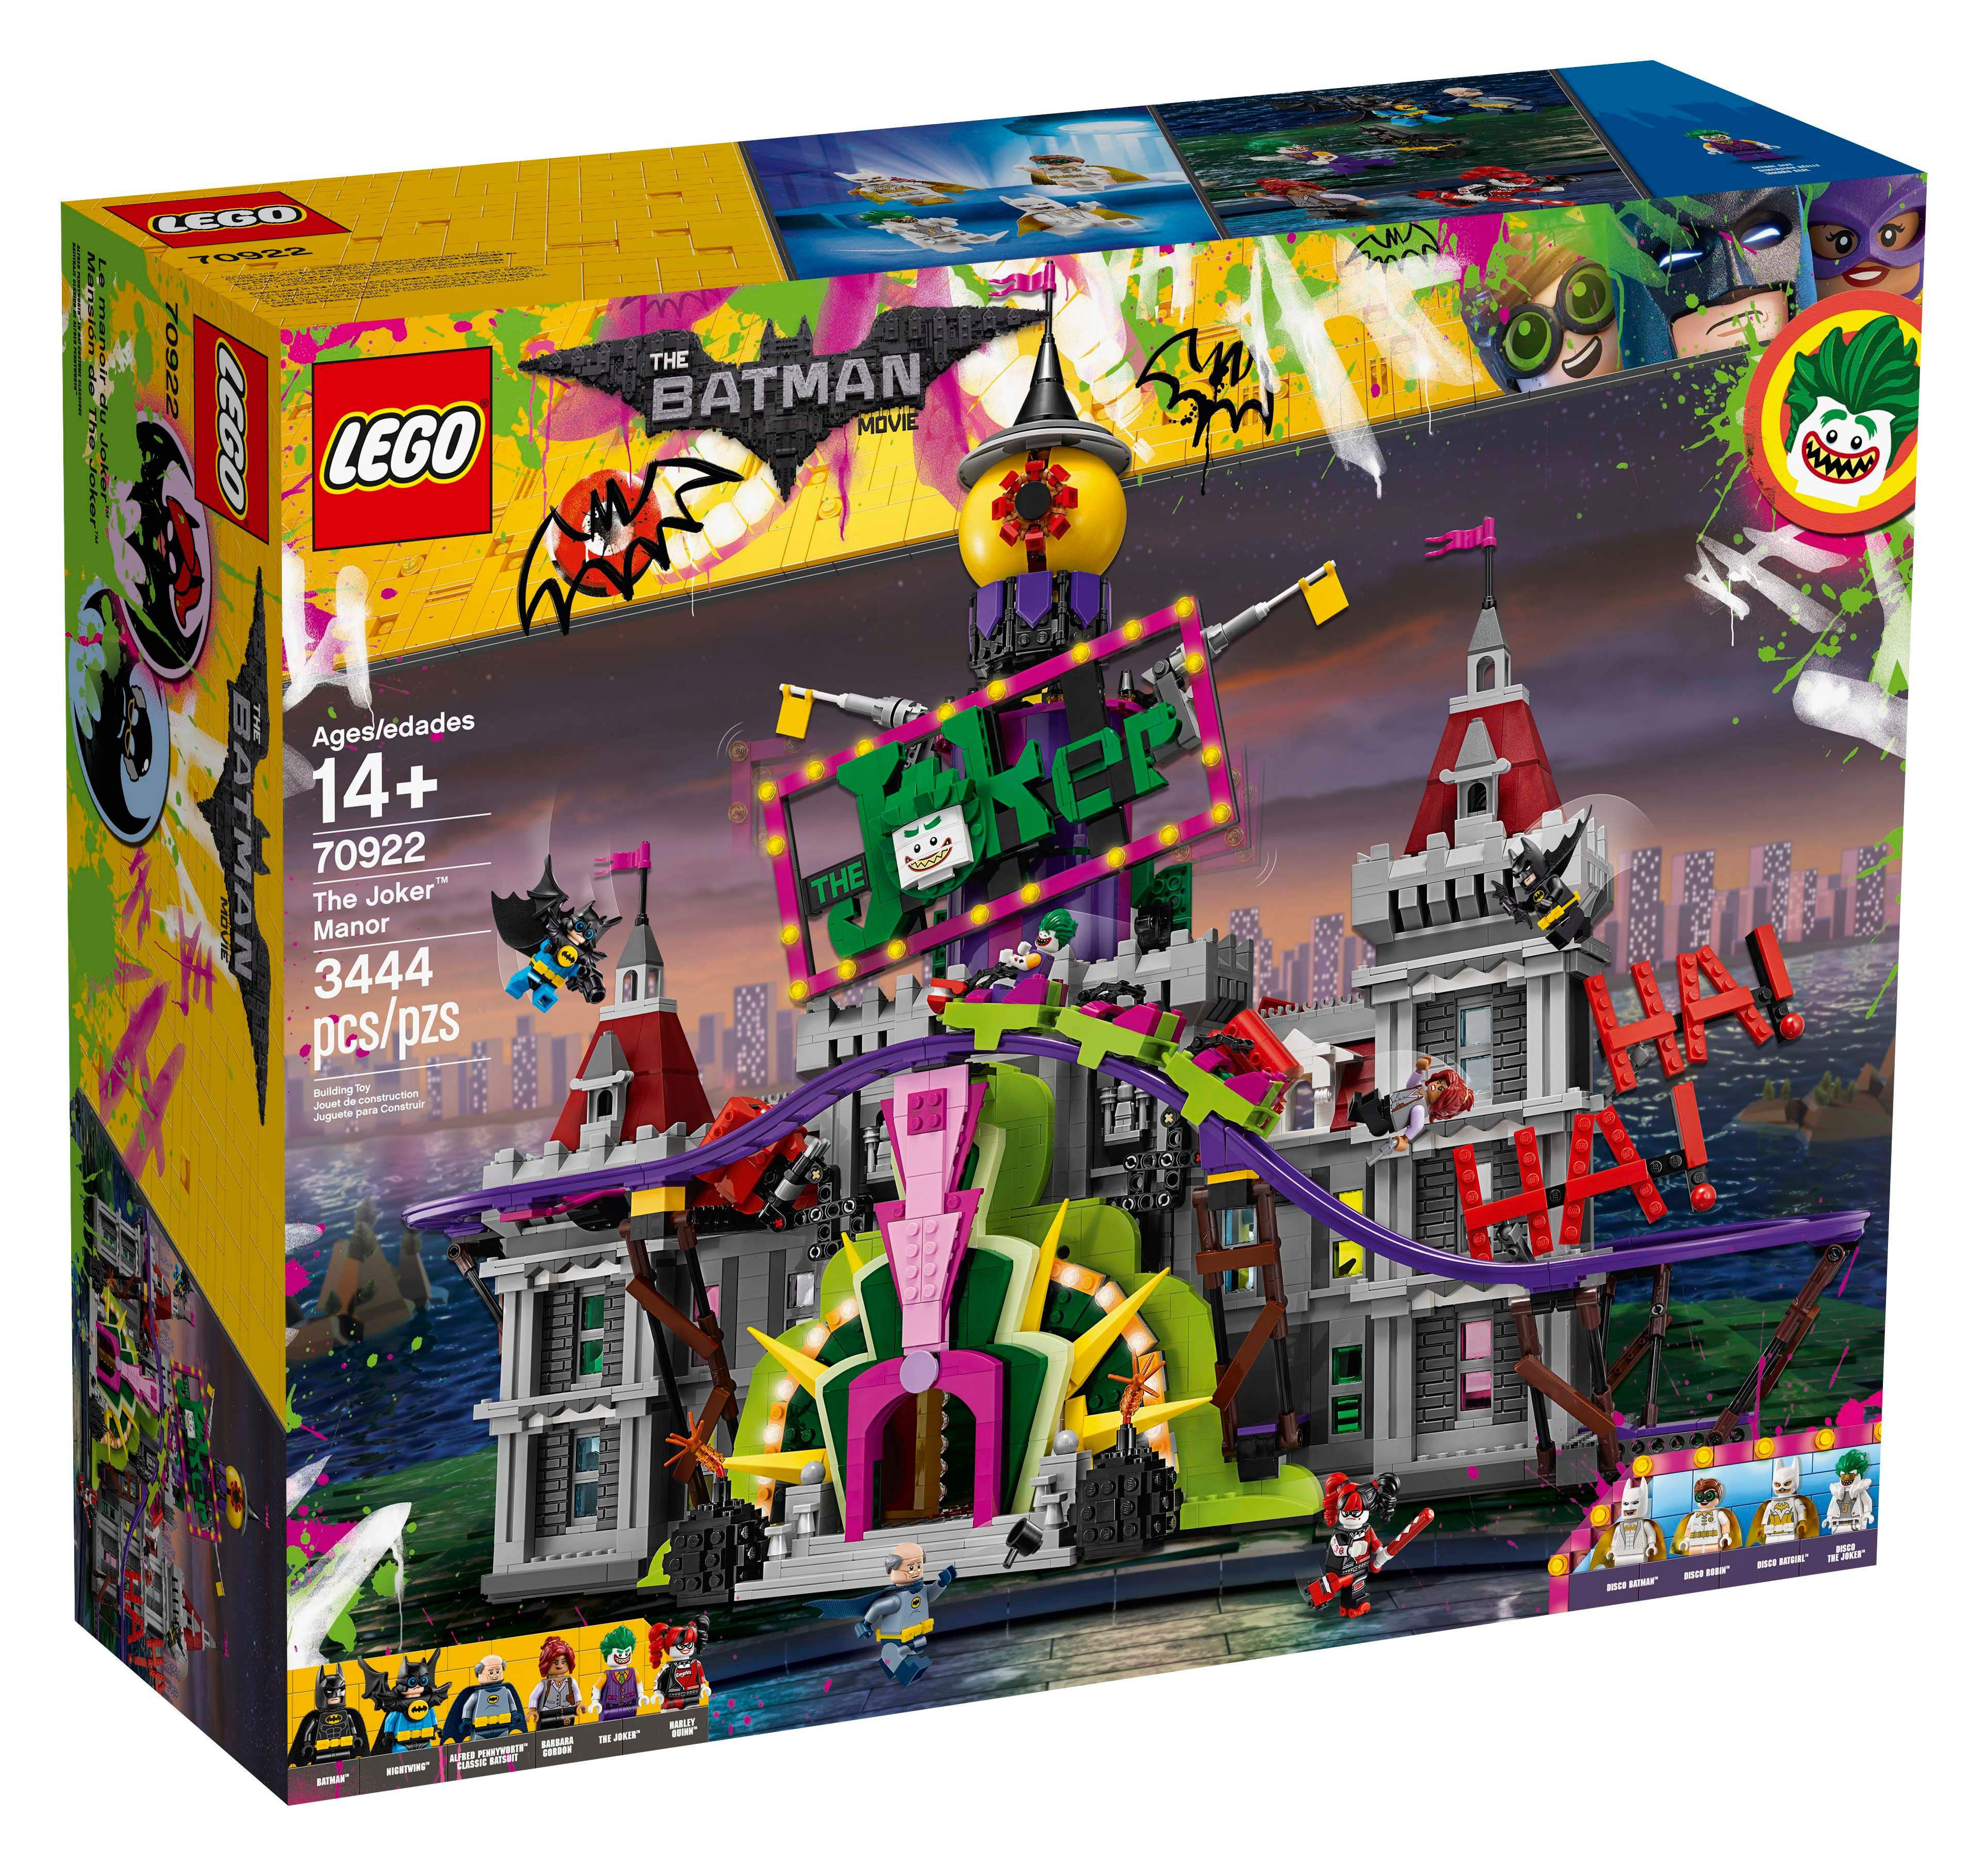 The Joker Batman RevealedCollider Movie Set For Lego Manor 4jLRq3A5